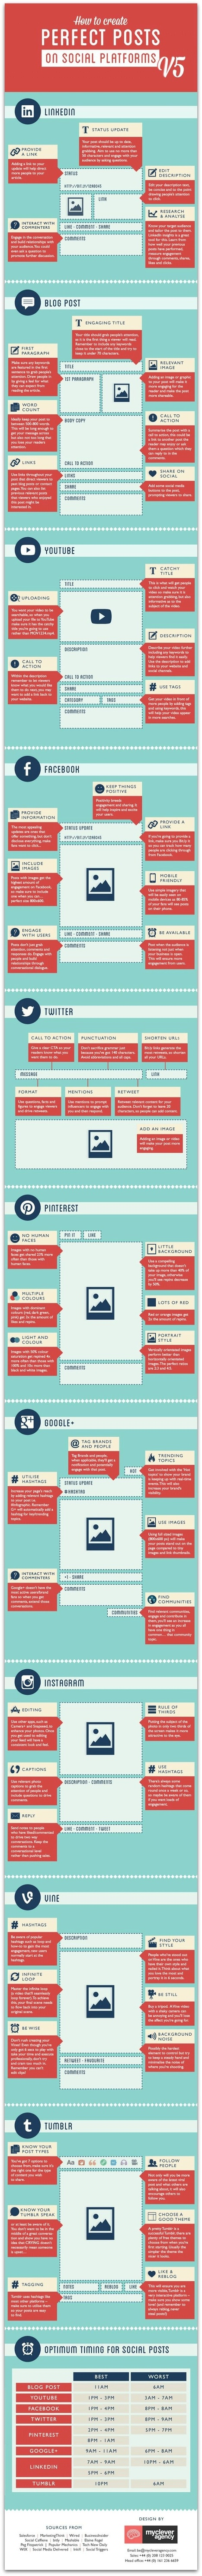 Infographic: How to create engaging social media posts | events | Scoop.it